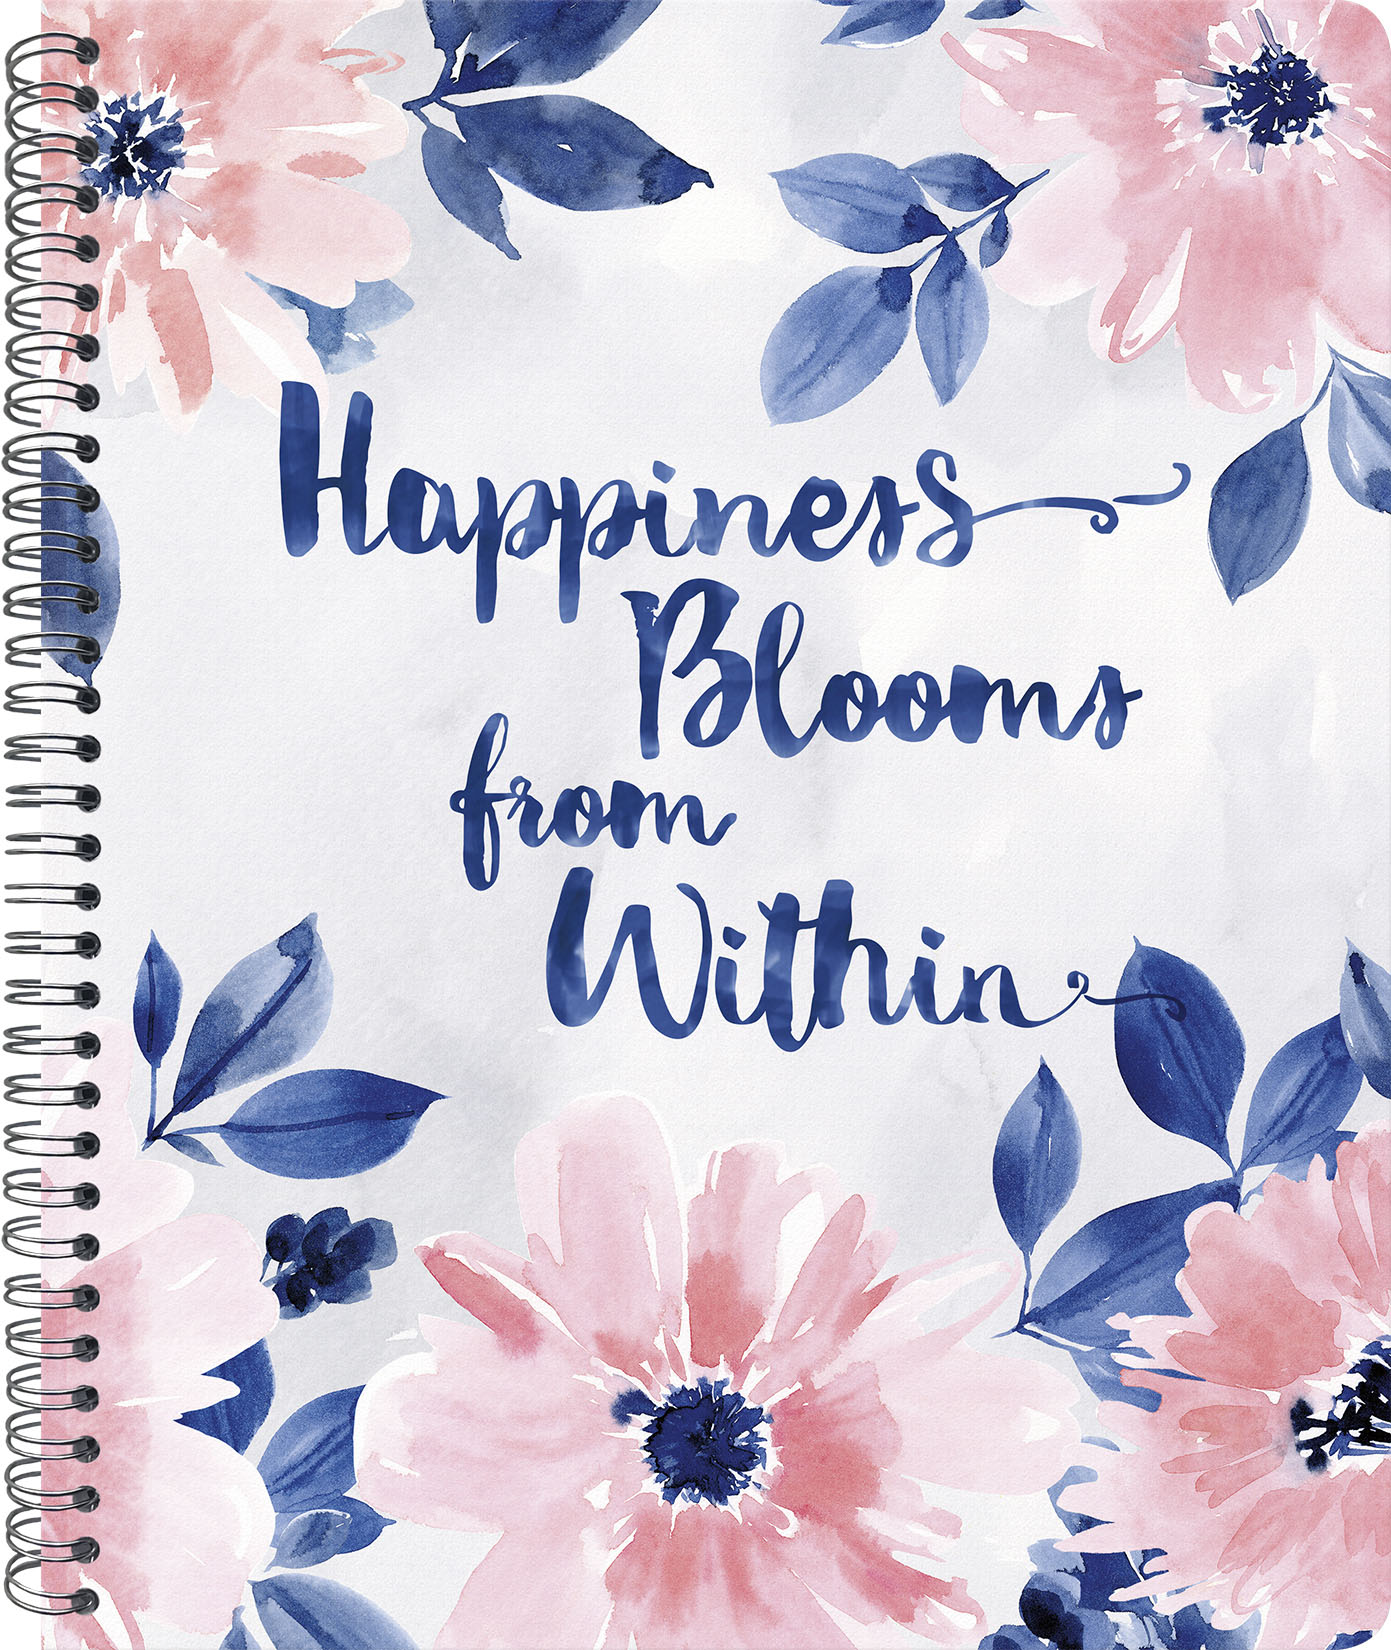 2019 Florals Weekly  Monthly Planner 8.5 x 11 by Trends International